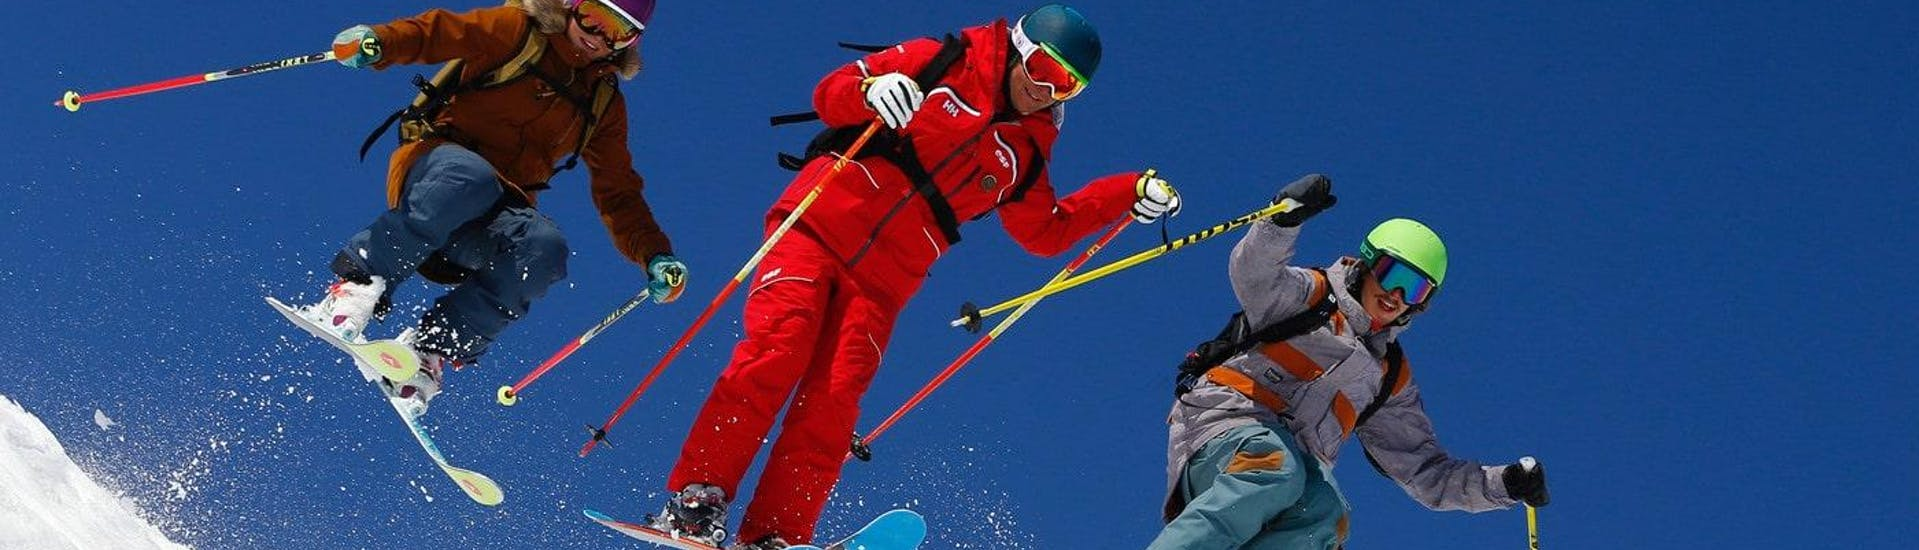 Skiers are skiing with confidence with their ski instructor from the ski school ESF Alpe d'Huez during their Ski Lessons for Adults - February - All Levels.